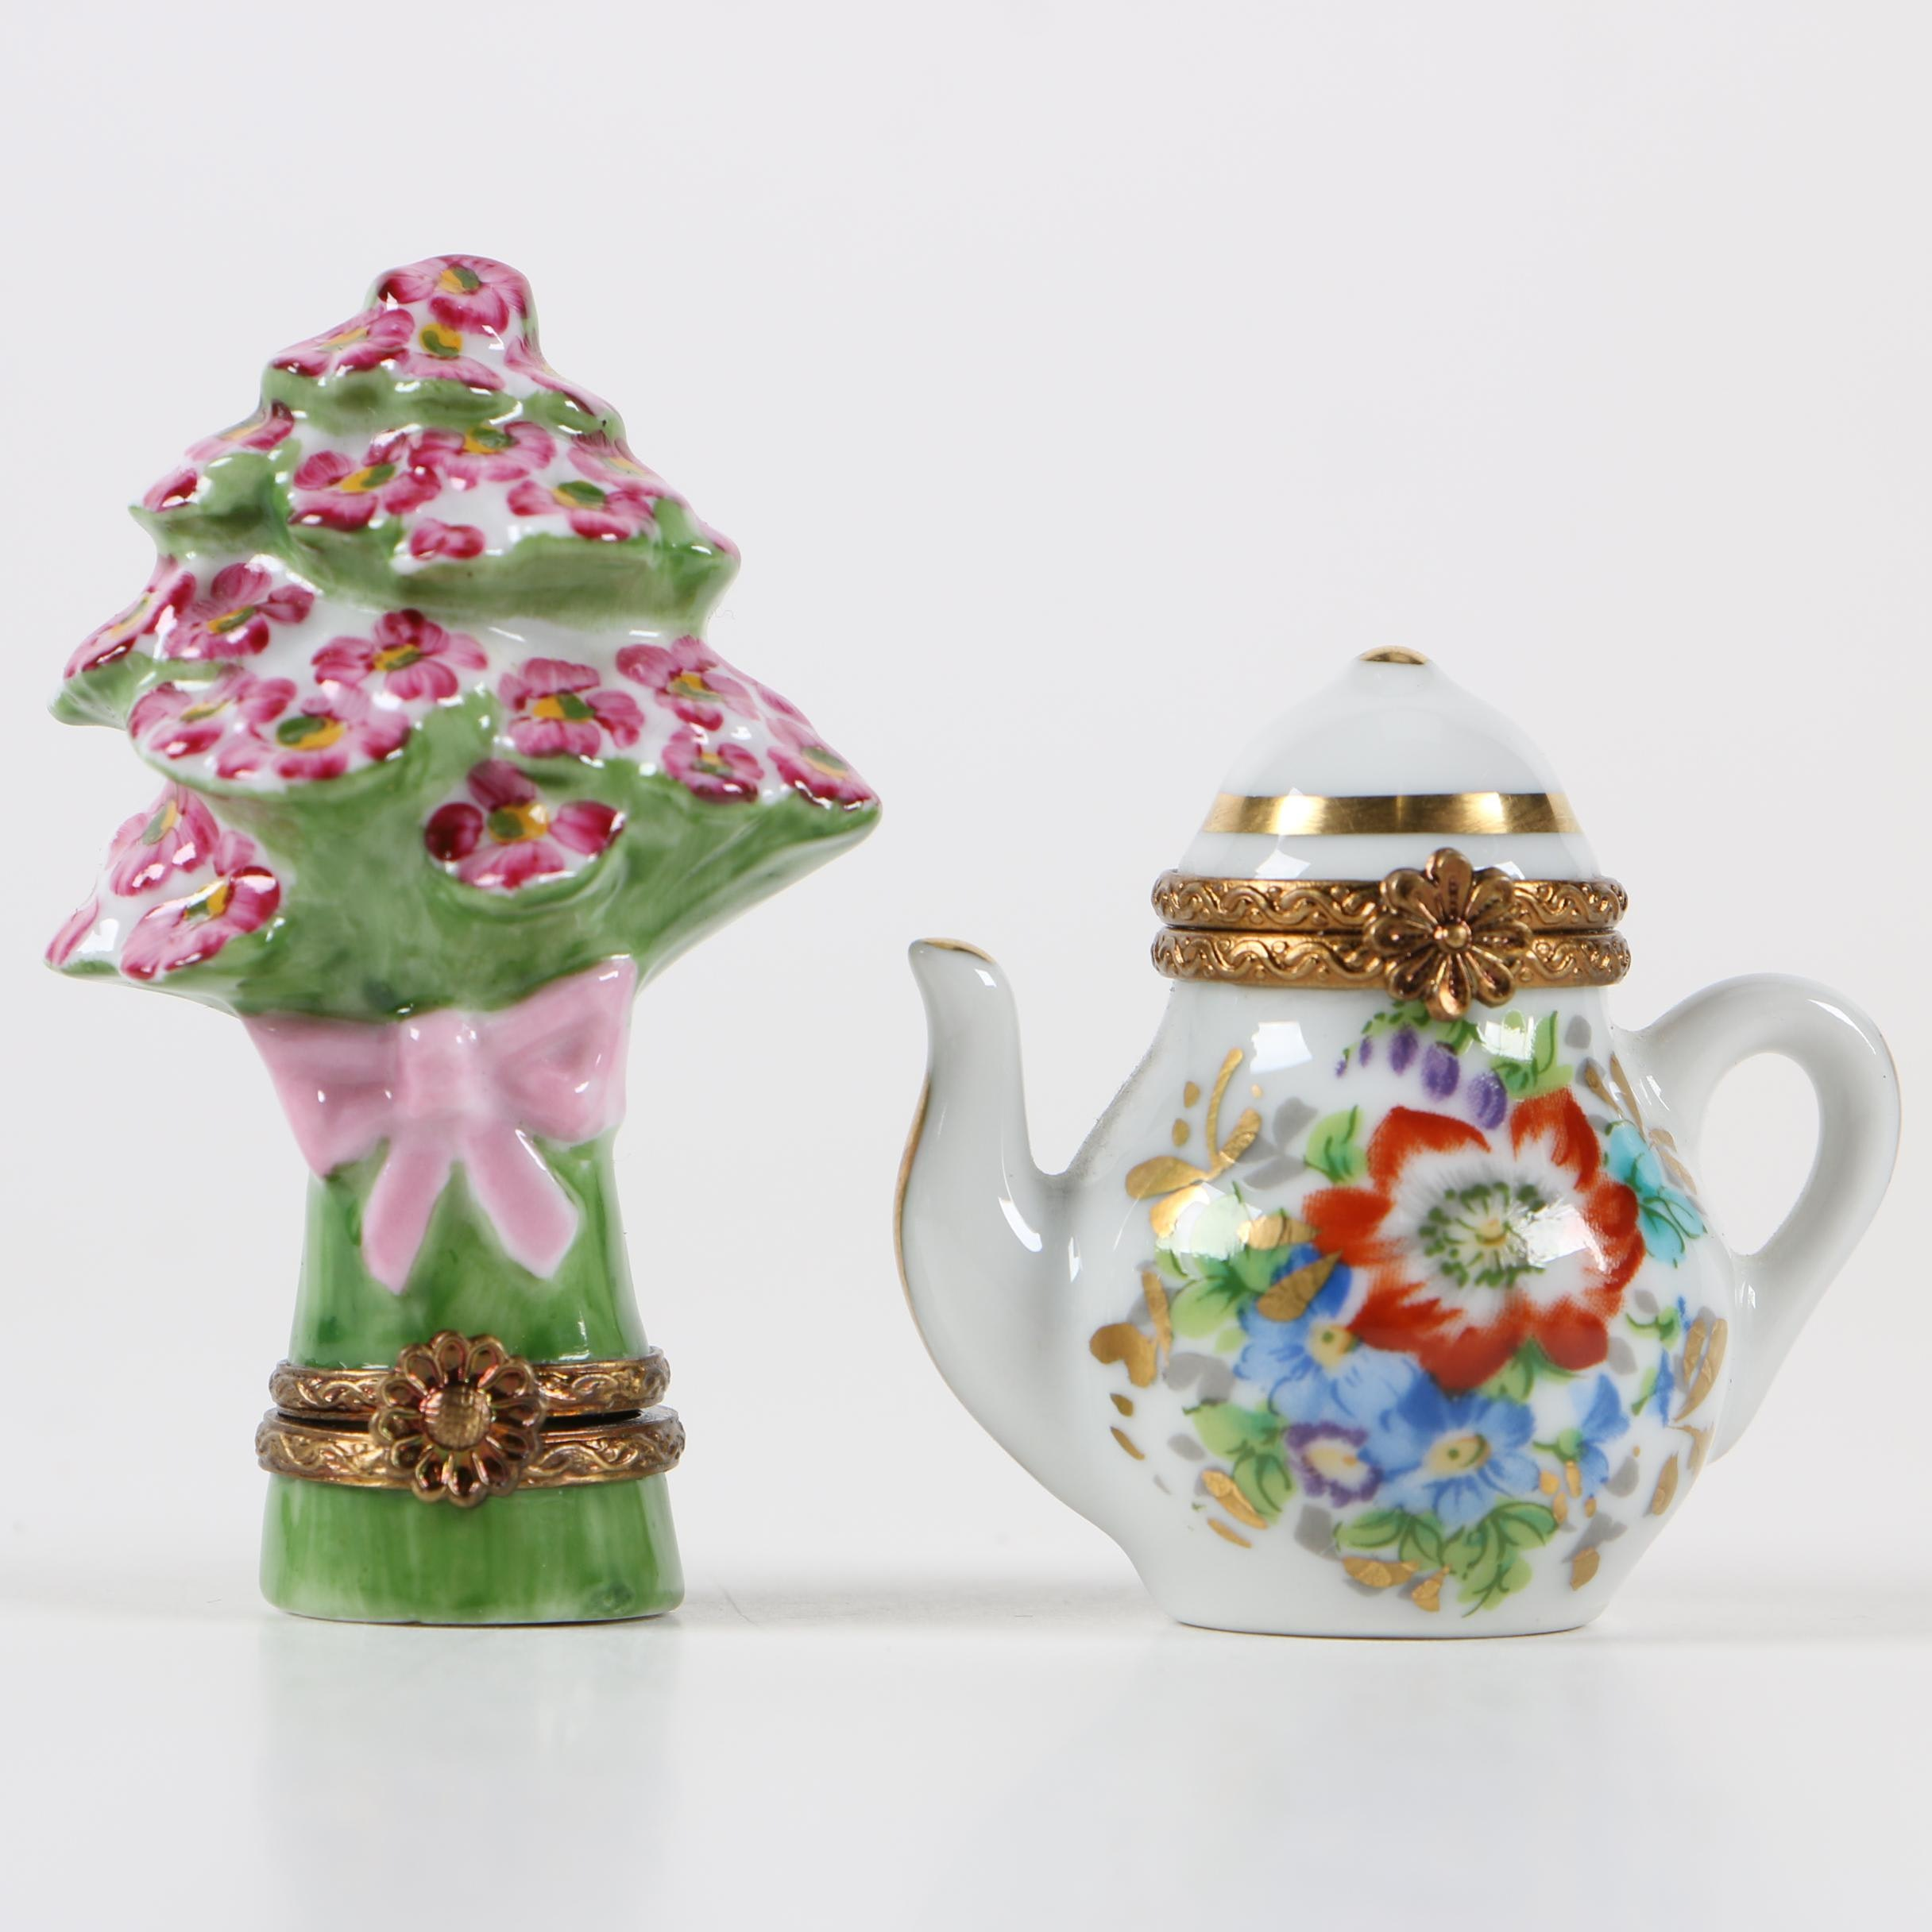 Limoges Porcelain Pill Boxes including Hand-Painted Chamart